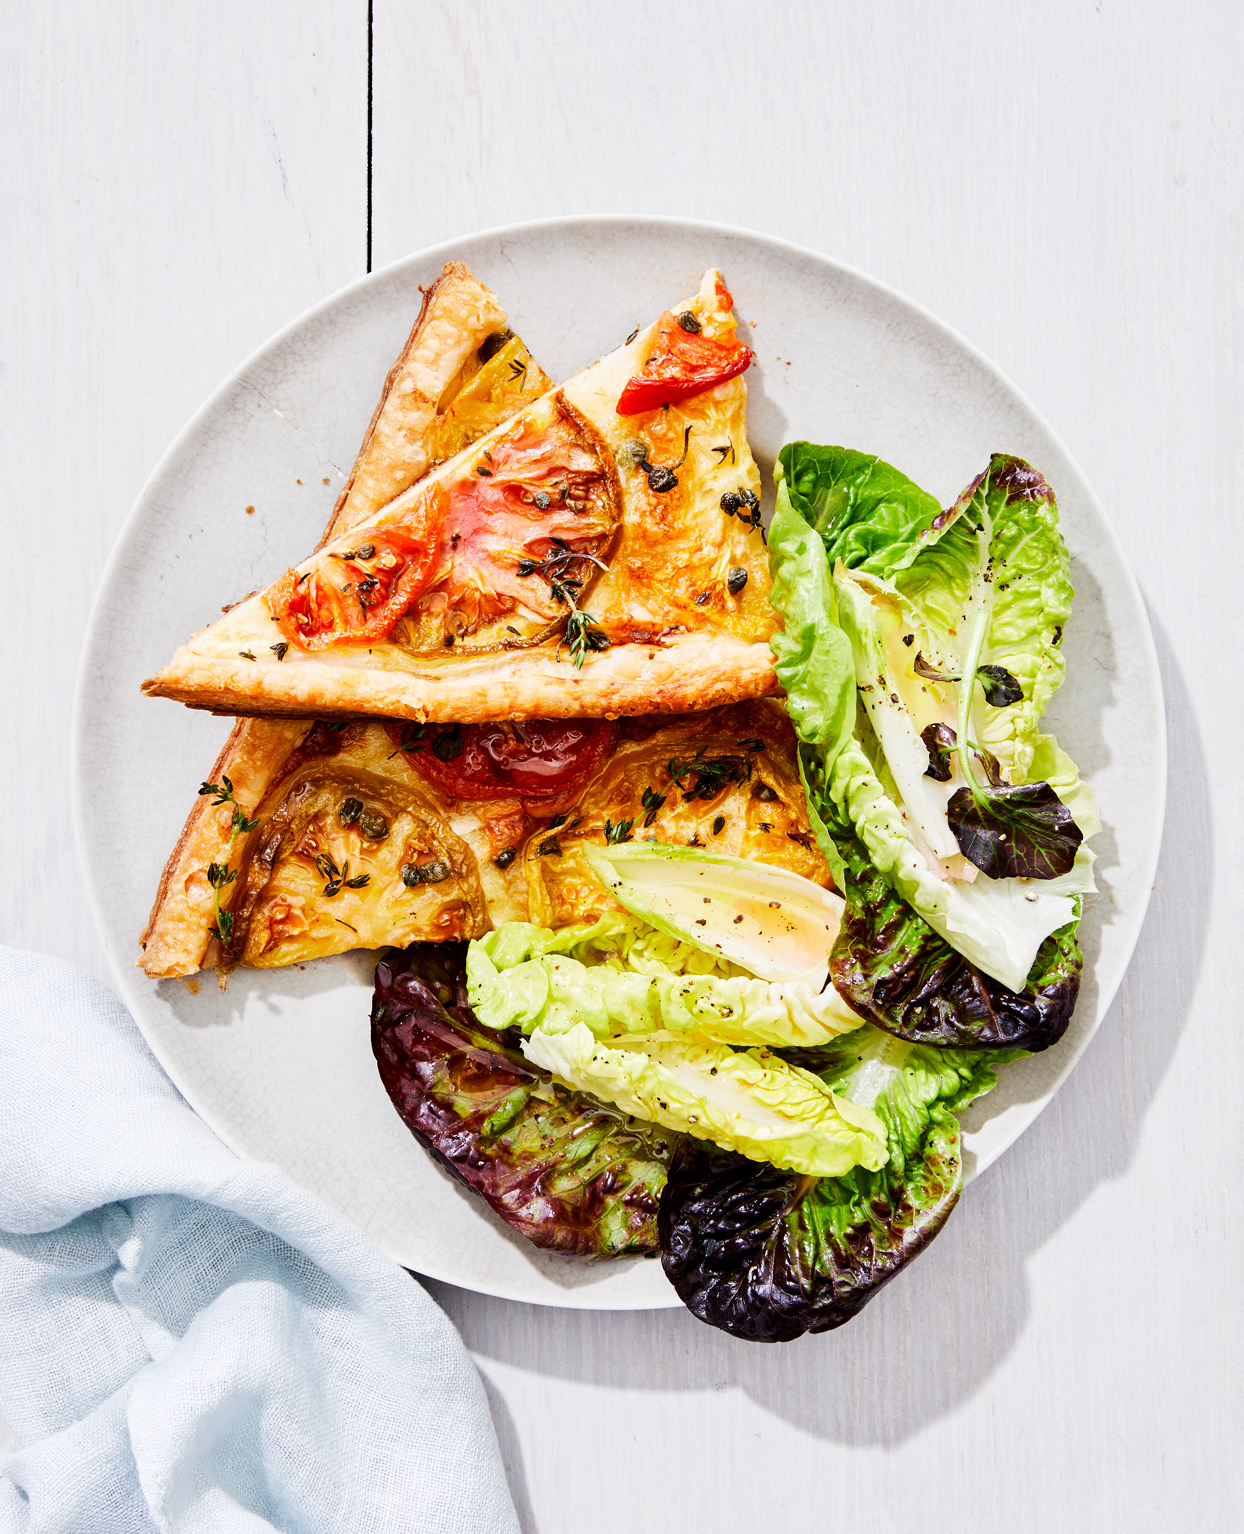 side salad with tomato and brie tart